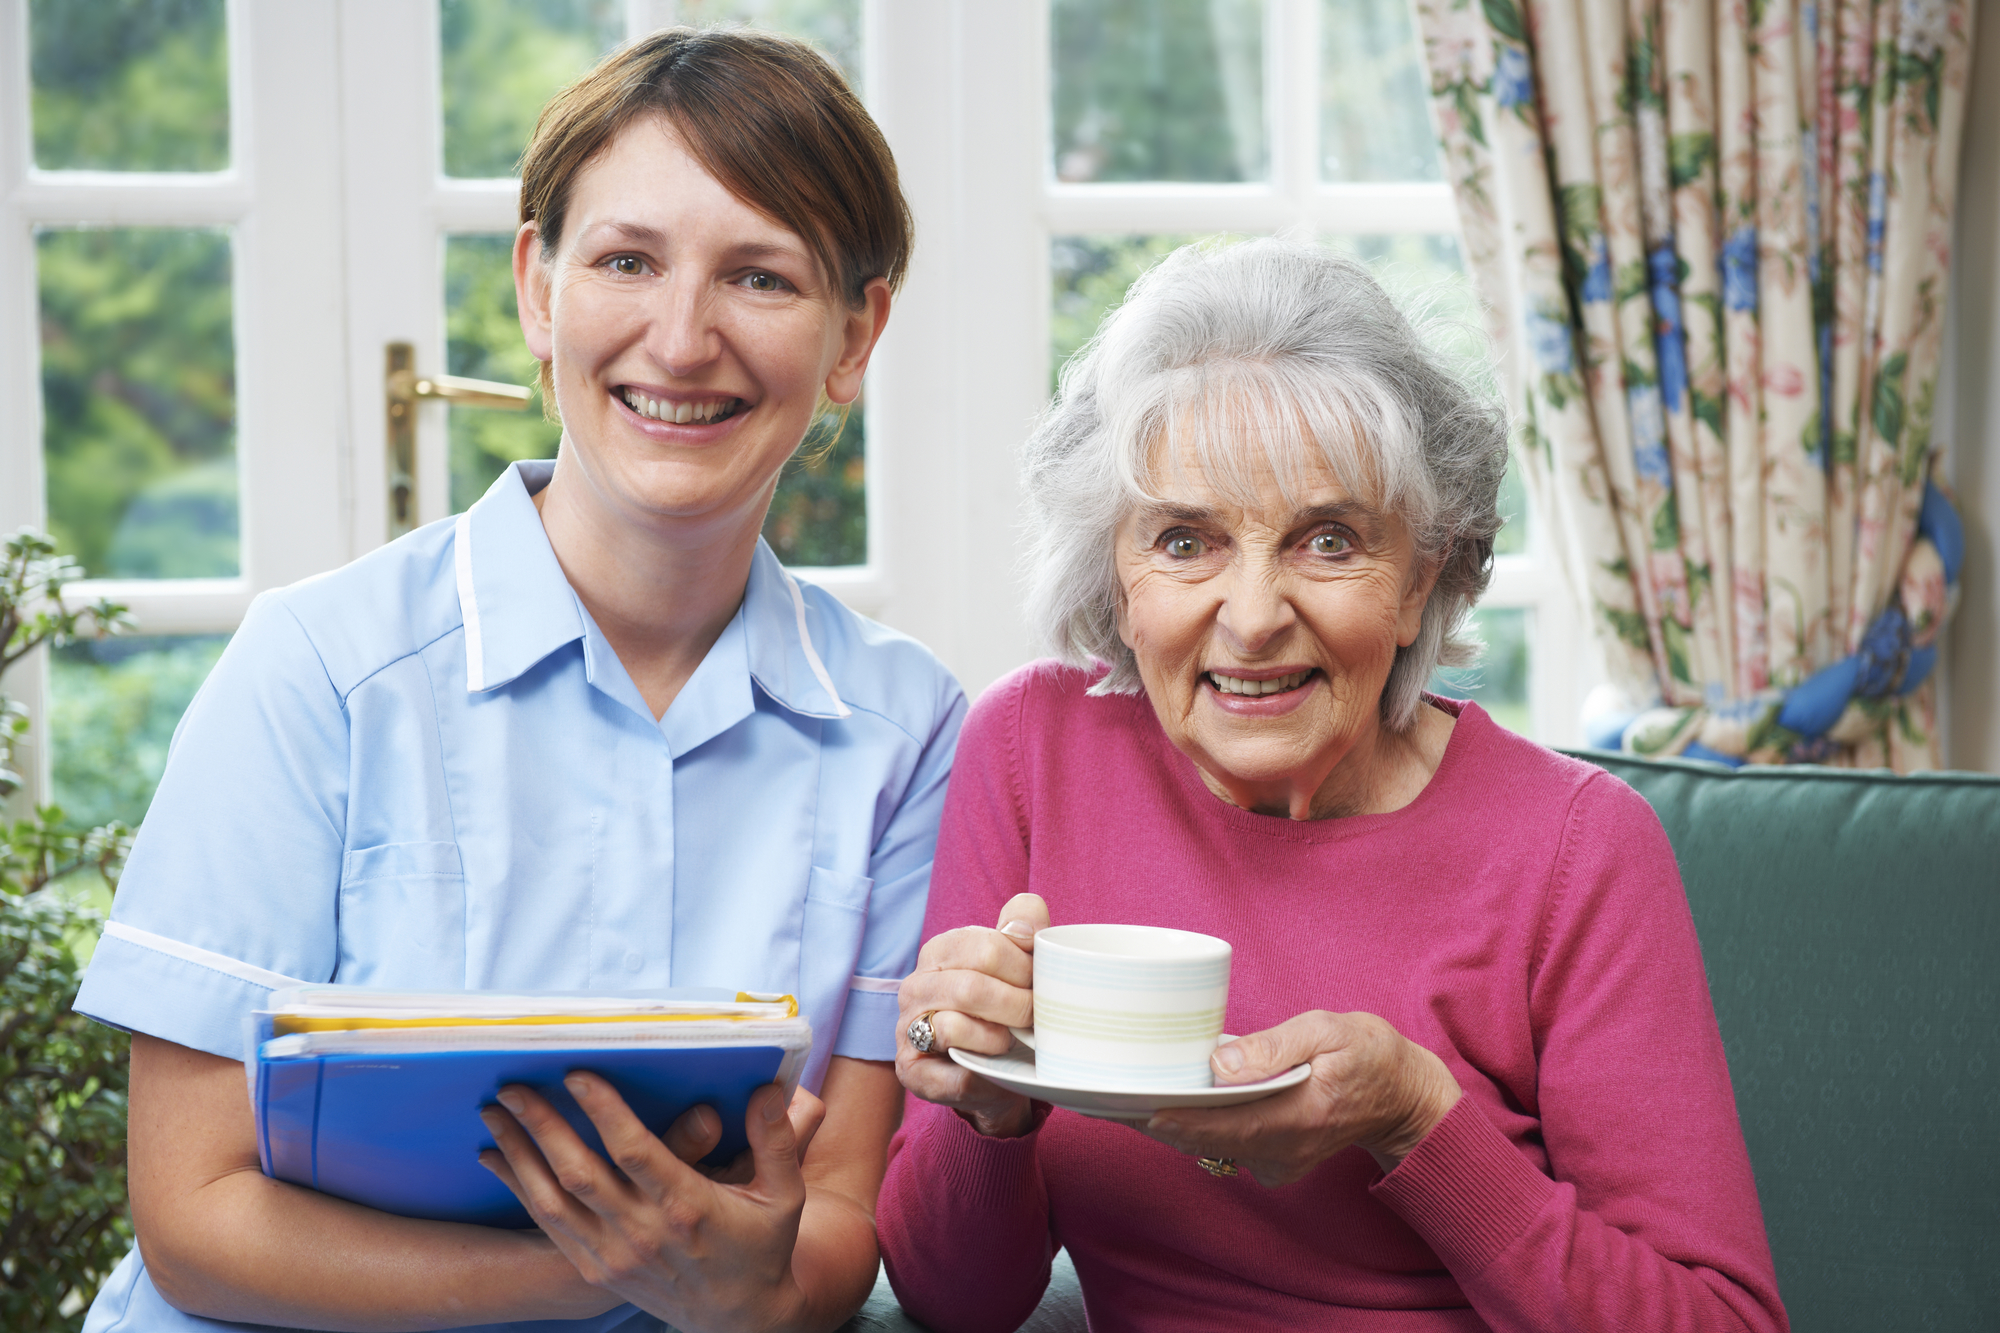 assisted living referral agency